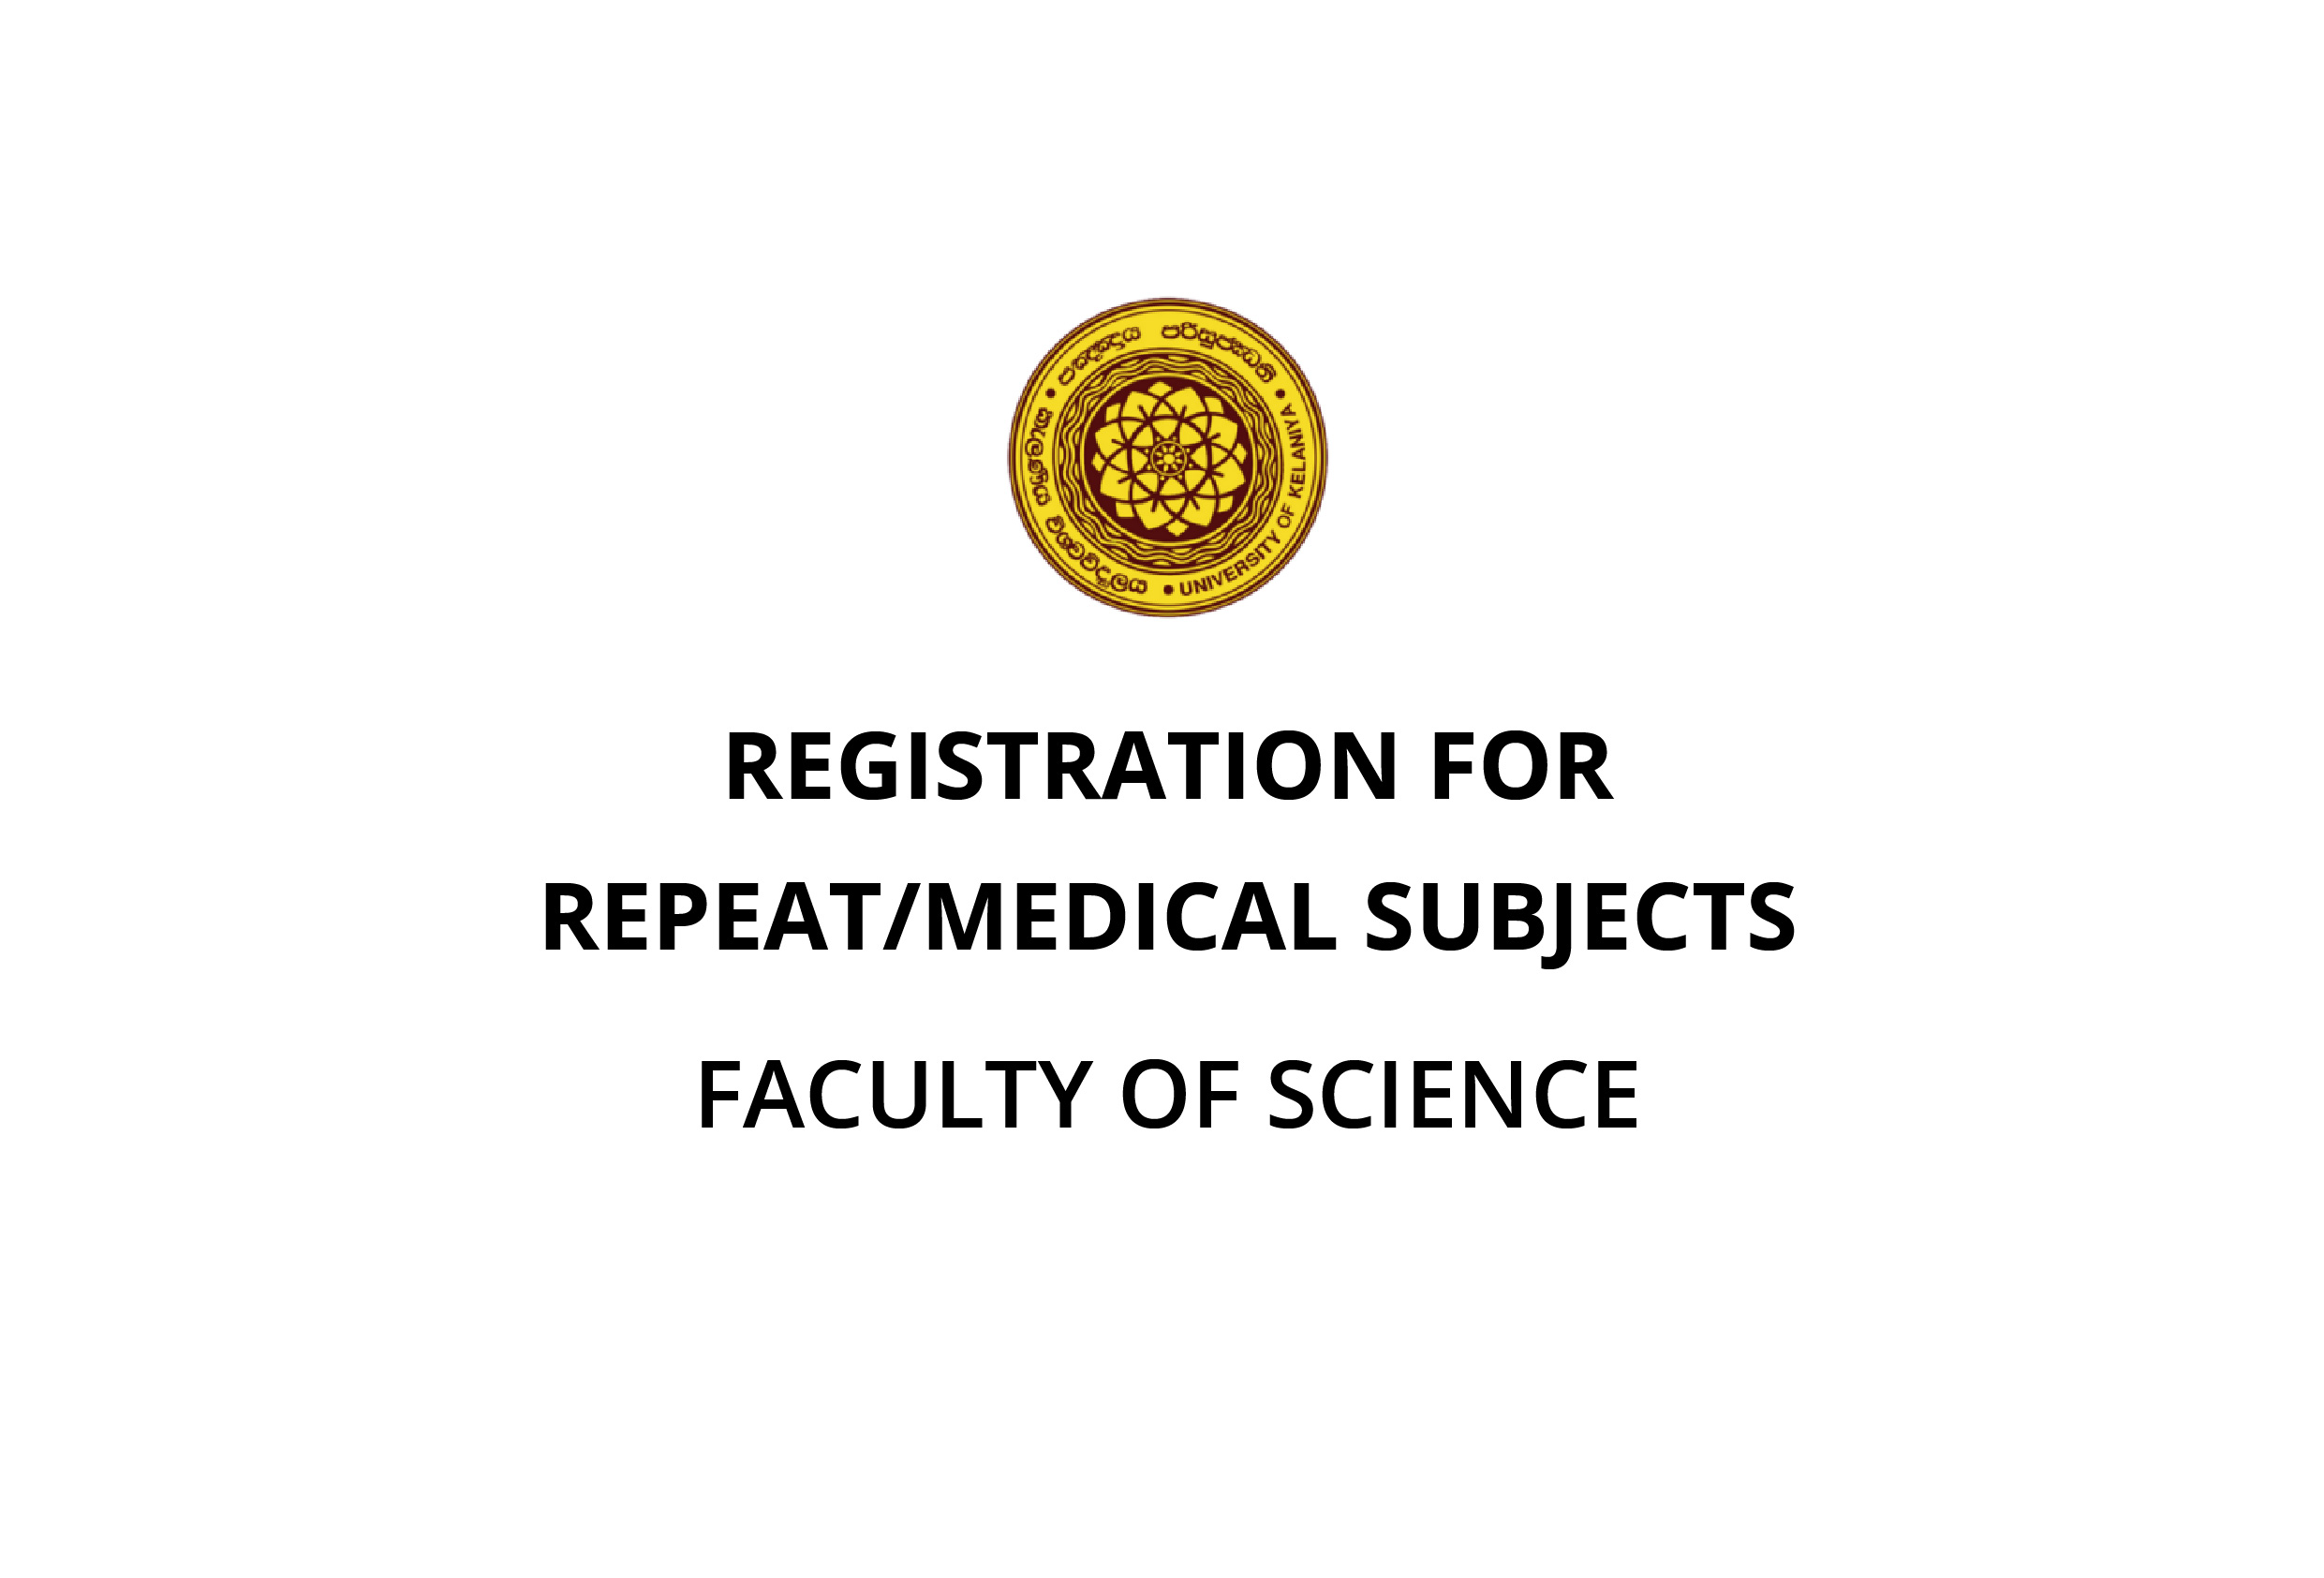 REGISTRATION FOR REPEAT/MEDICAL SUBJECTSFACULTY OF SCIENCE